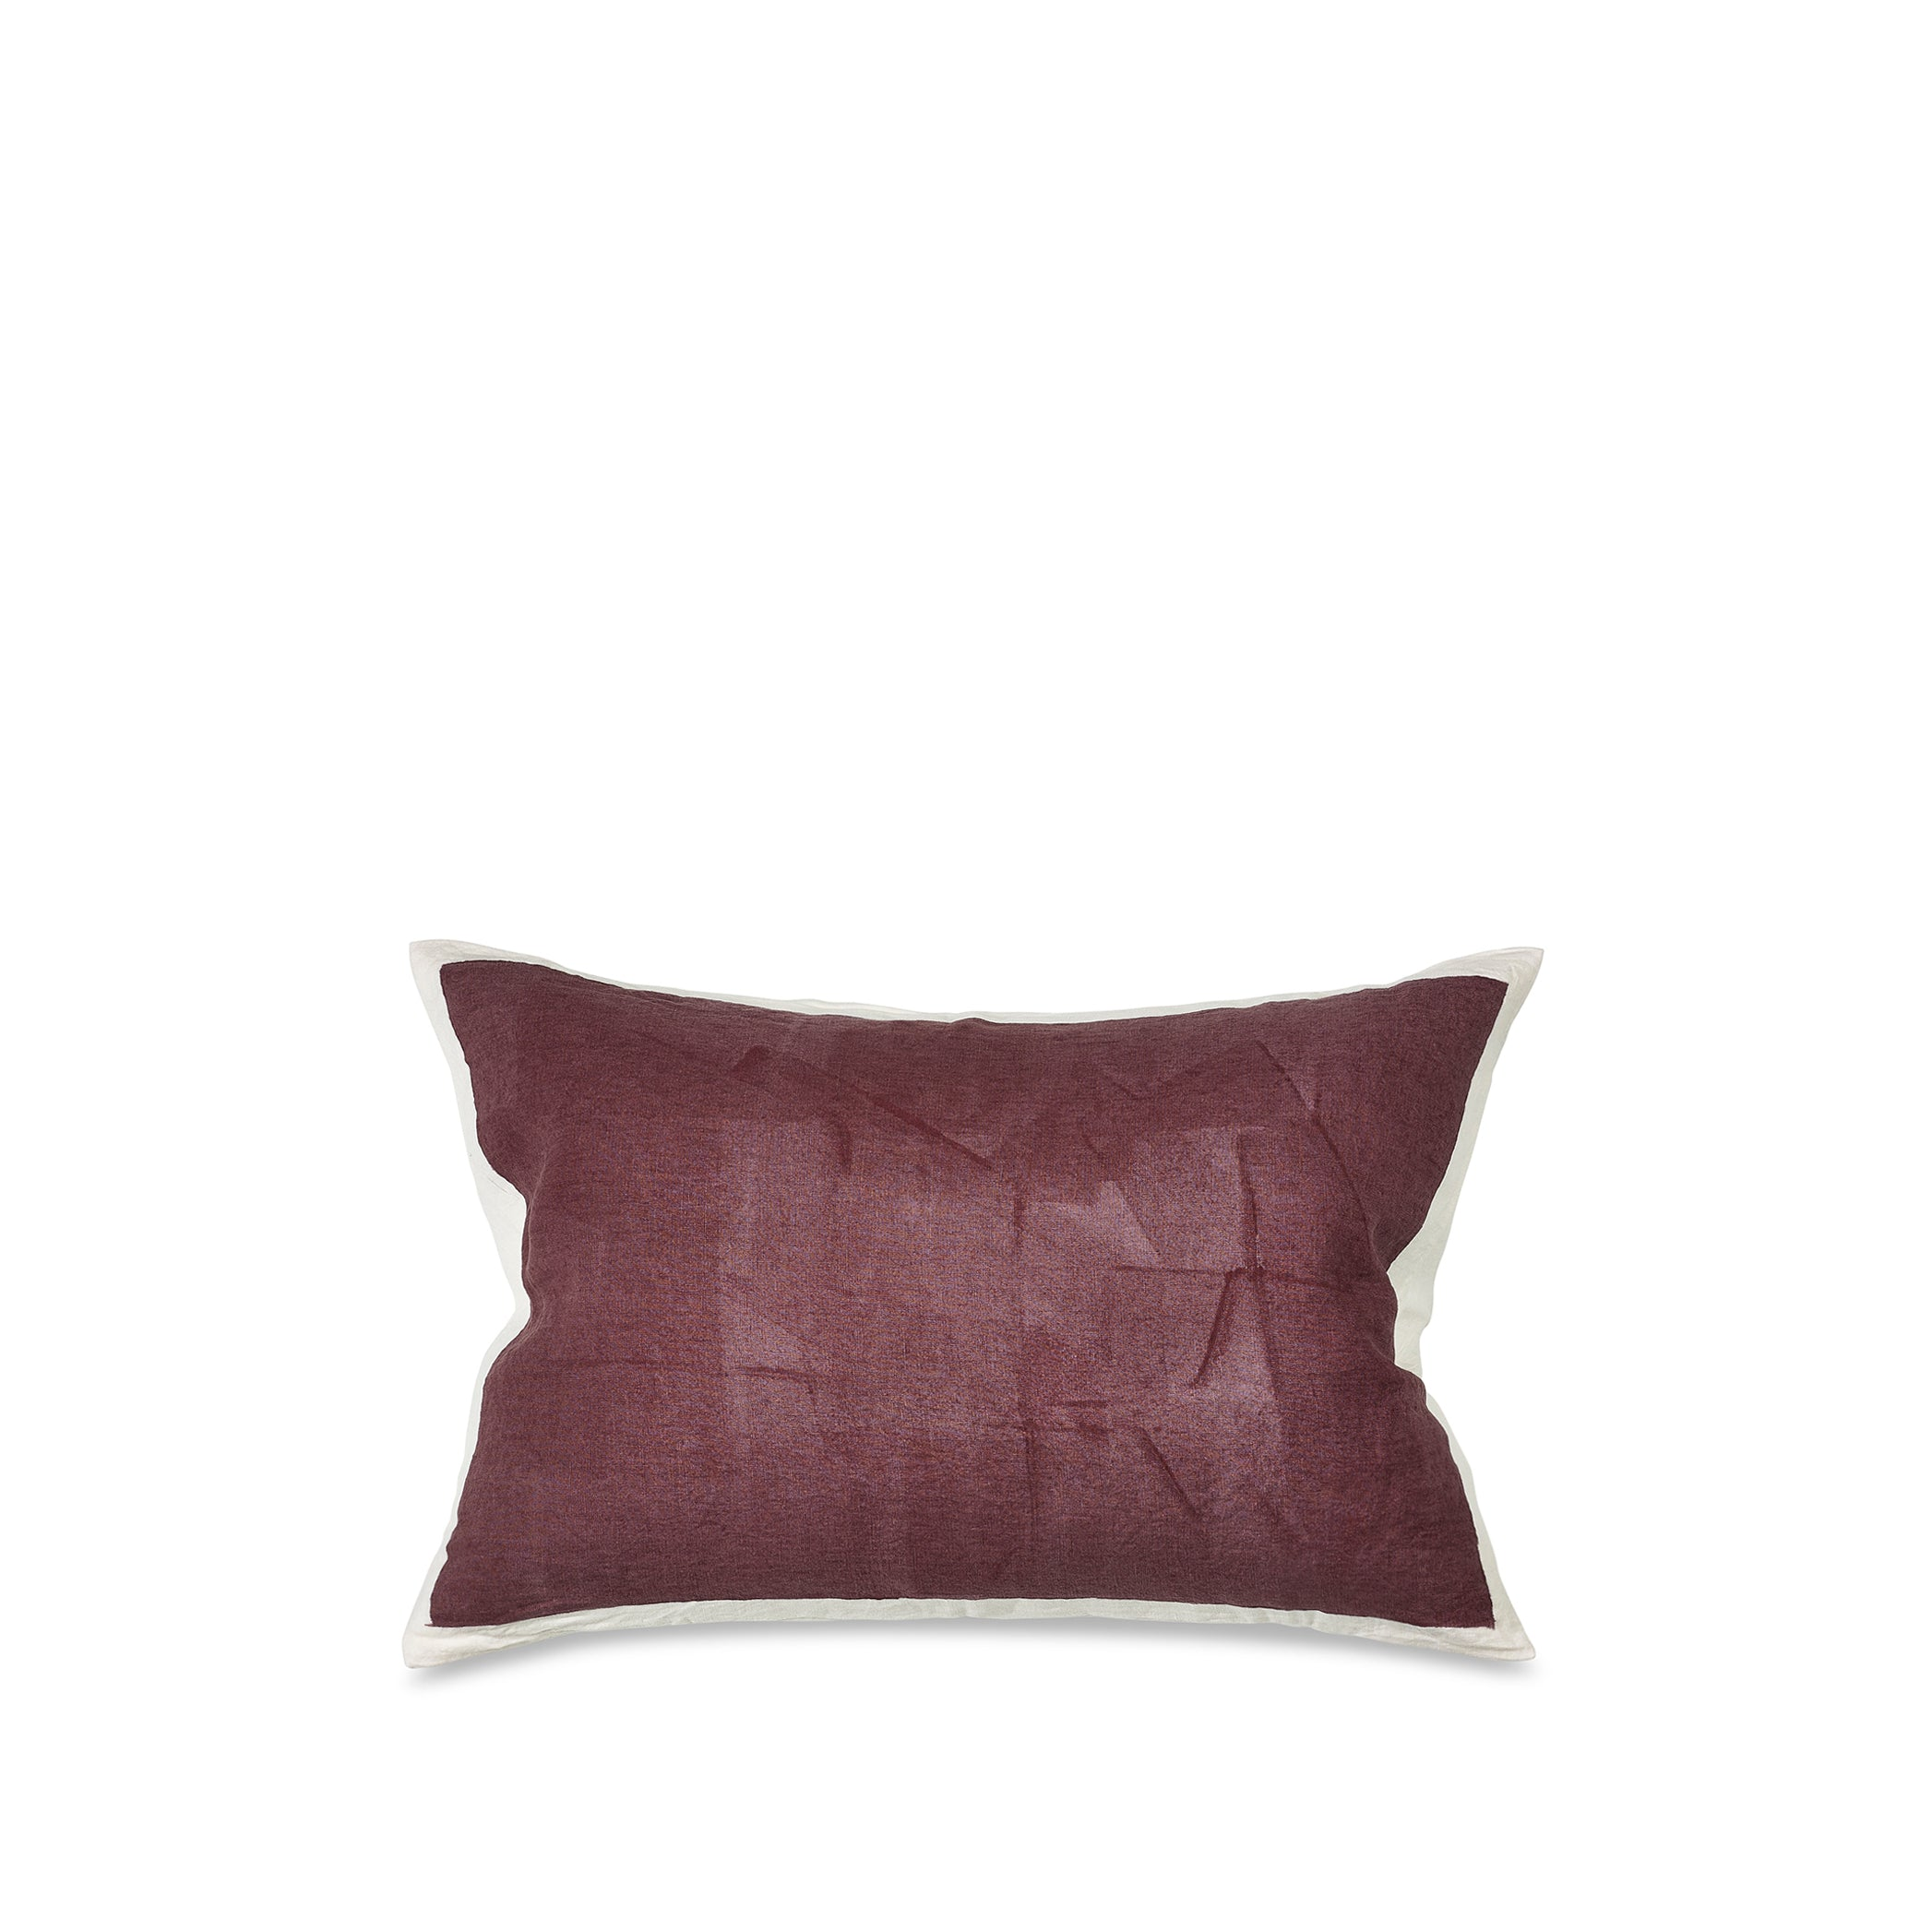 Hand Painted Linen Cushion in Grape, 60cm x 40cm